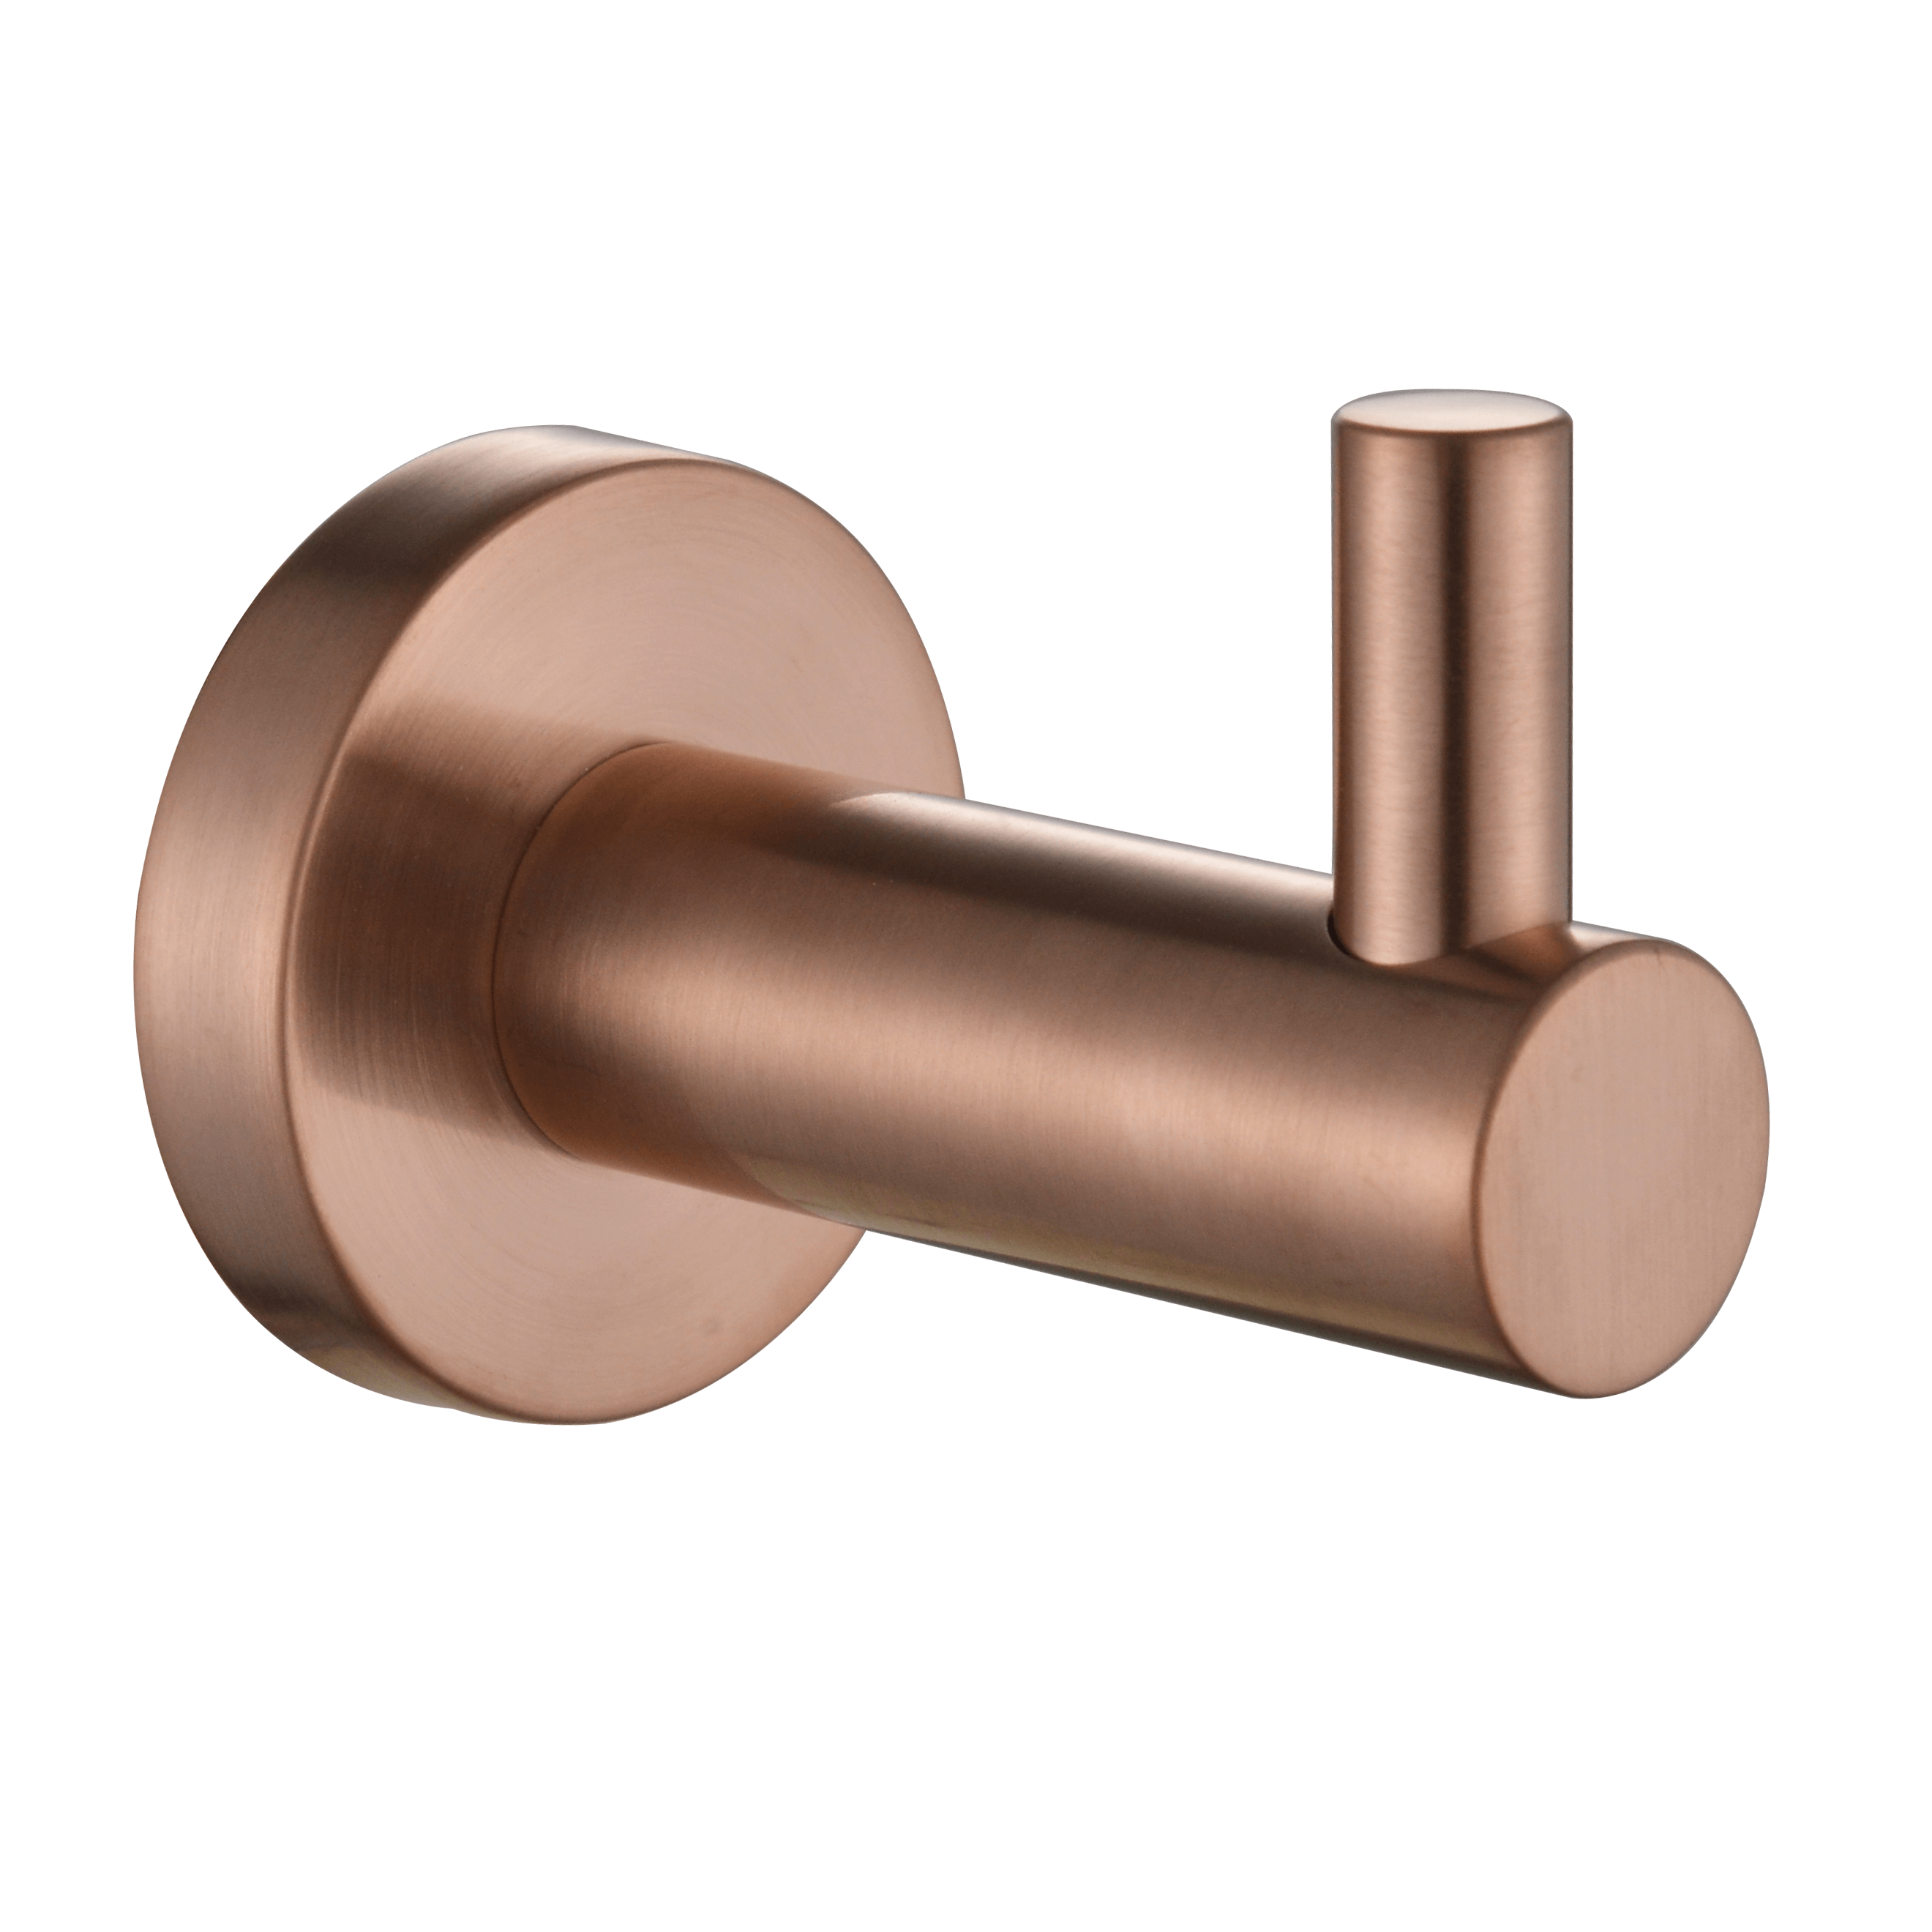 Mirage Single Robe Hook - PVD Champagne